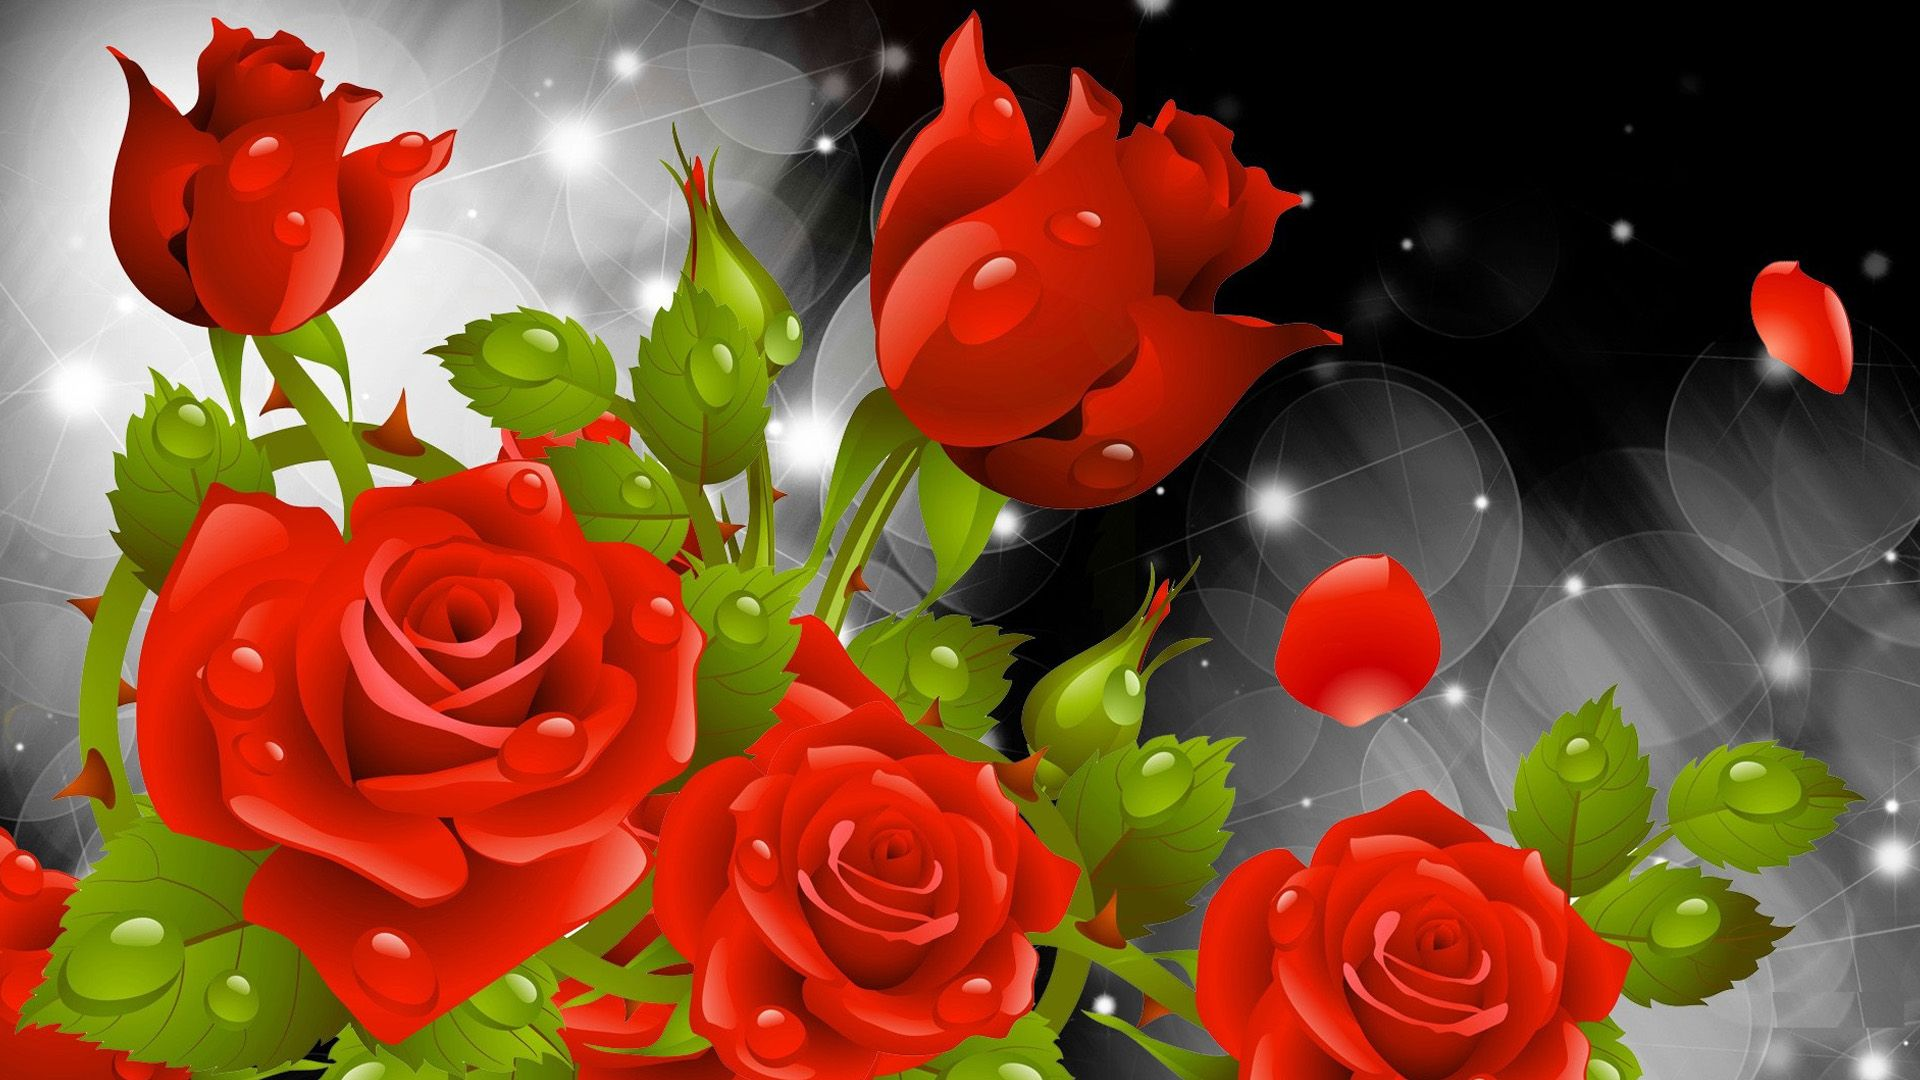 Red Rose Wallpapers Red Flowers HD Pictures One HD Wallpaper 1280     Red Rose Wallpapers Red Flowers HD Pictures One HD Wallpaper 1280    800 Red  Rose Picture Wallpapers  40 Wallpapers    Adorable Wallpapers